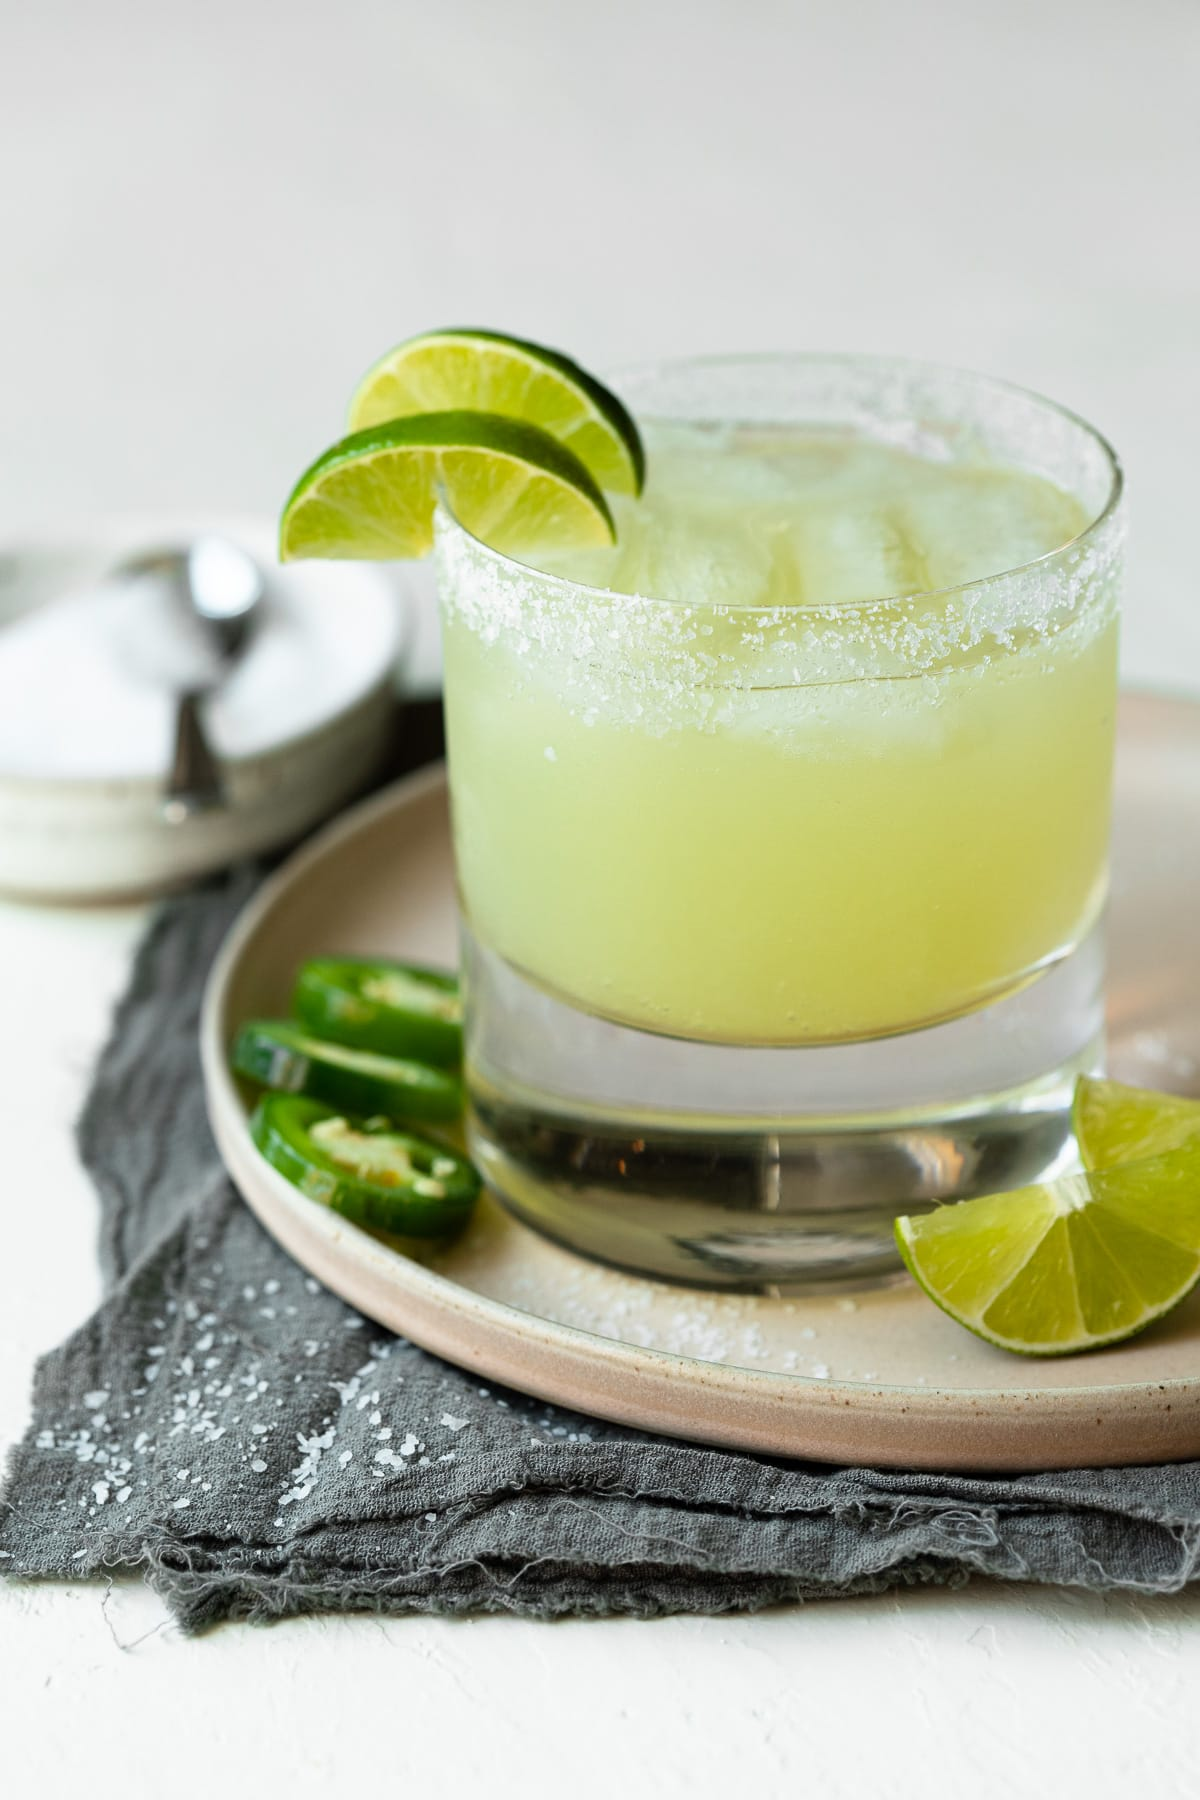 Margarita on the rocks with a salt rim and lime garnish.